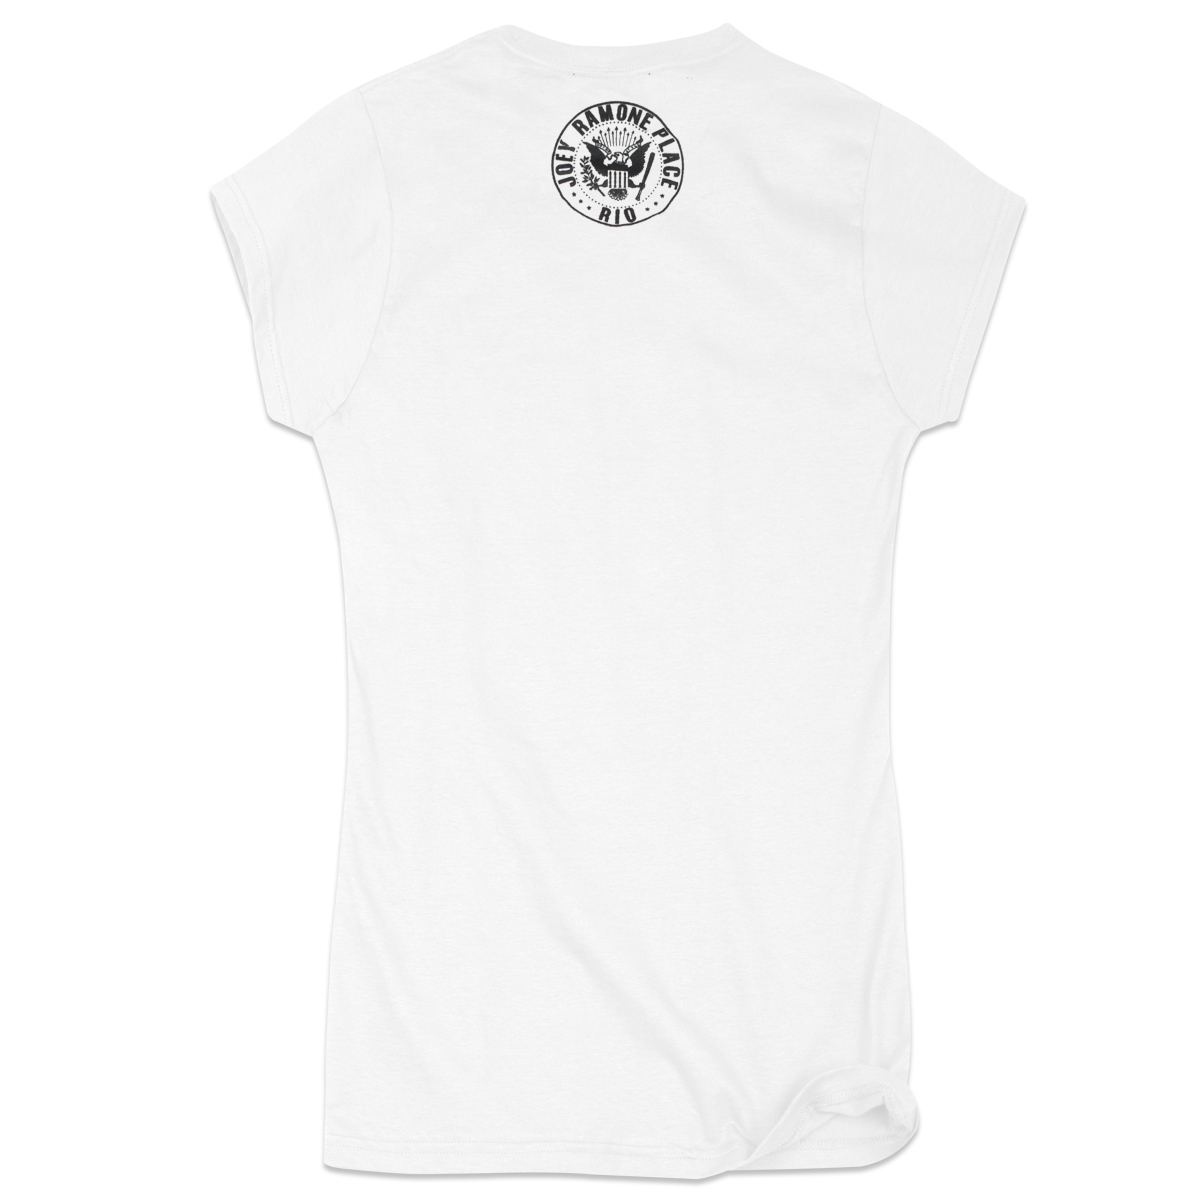 Gabba Gabba Hey Seal Womens Tee